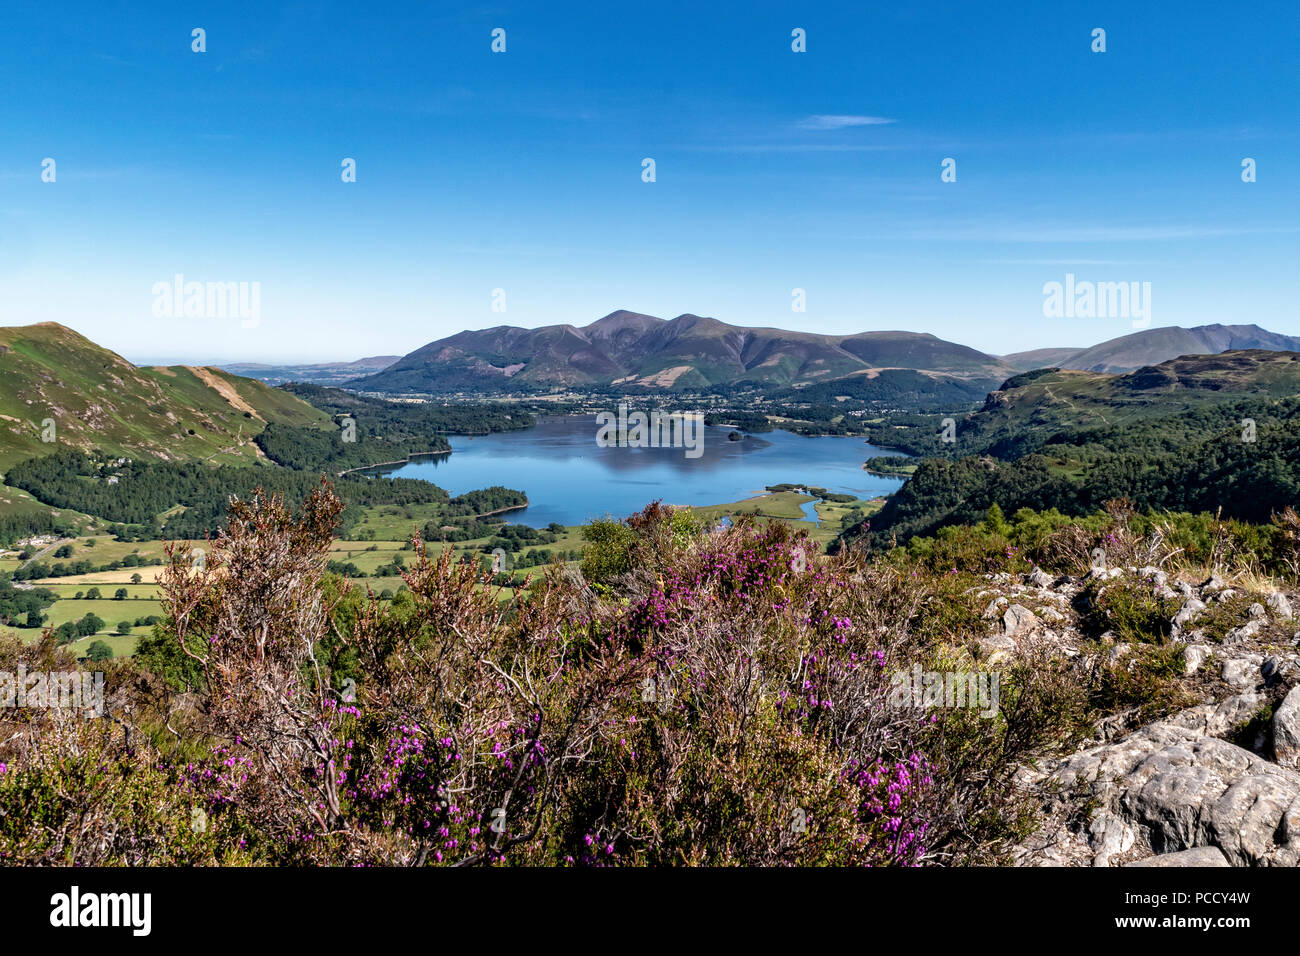 Looking across Derwent Water to Keswick and Skiddaw from King's How on Grange Fell - Stock Image